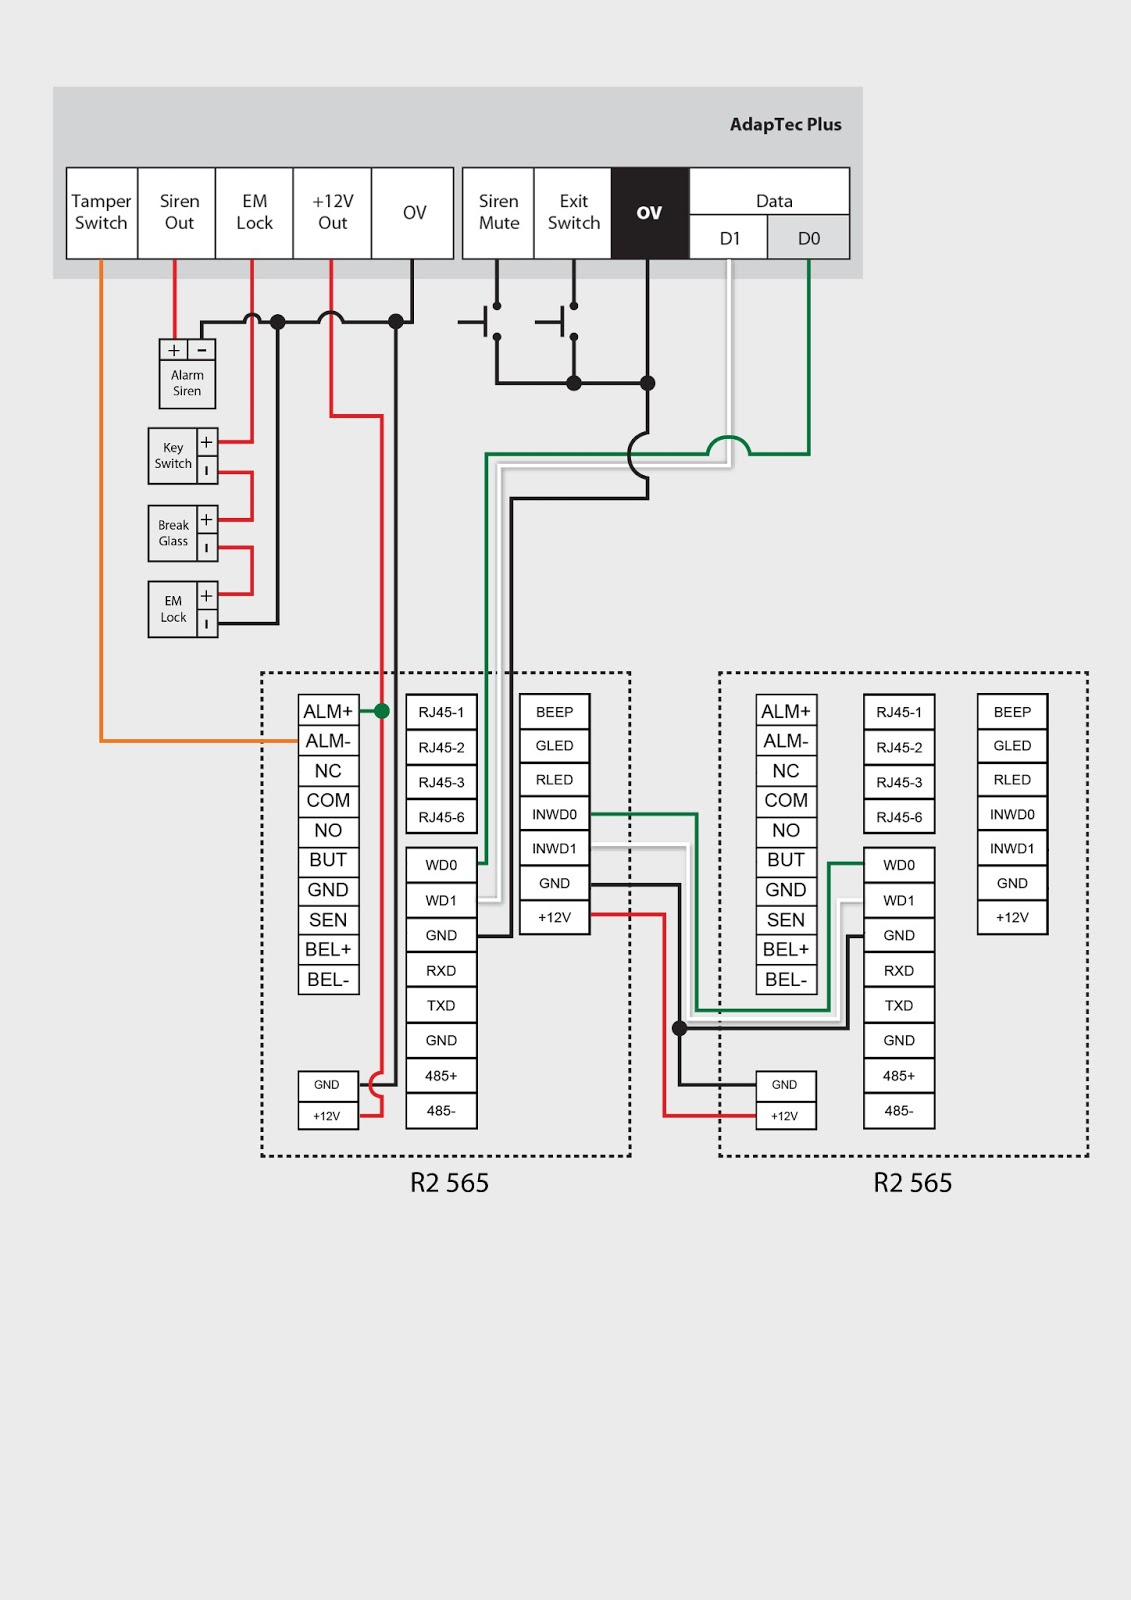 small resolution of master com siren controller wiring diagram wiring library master com siren controller wiring diagram